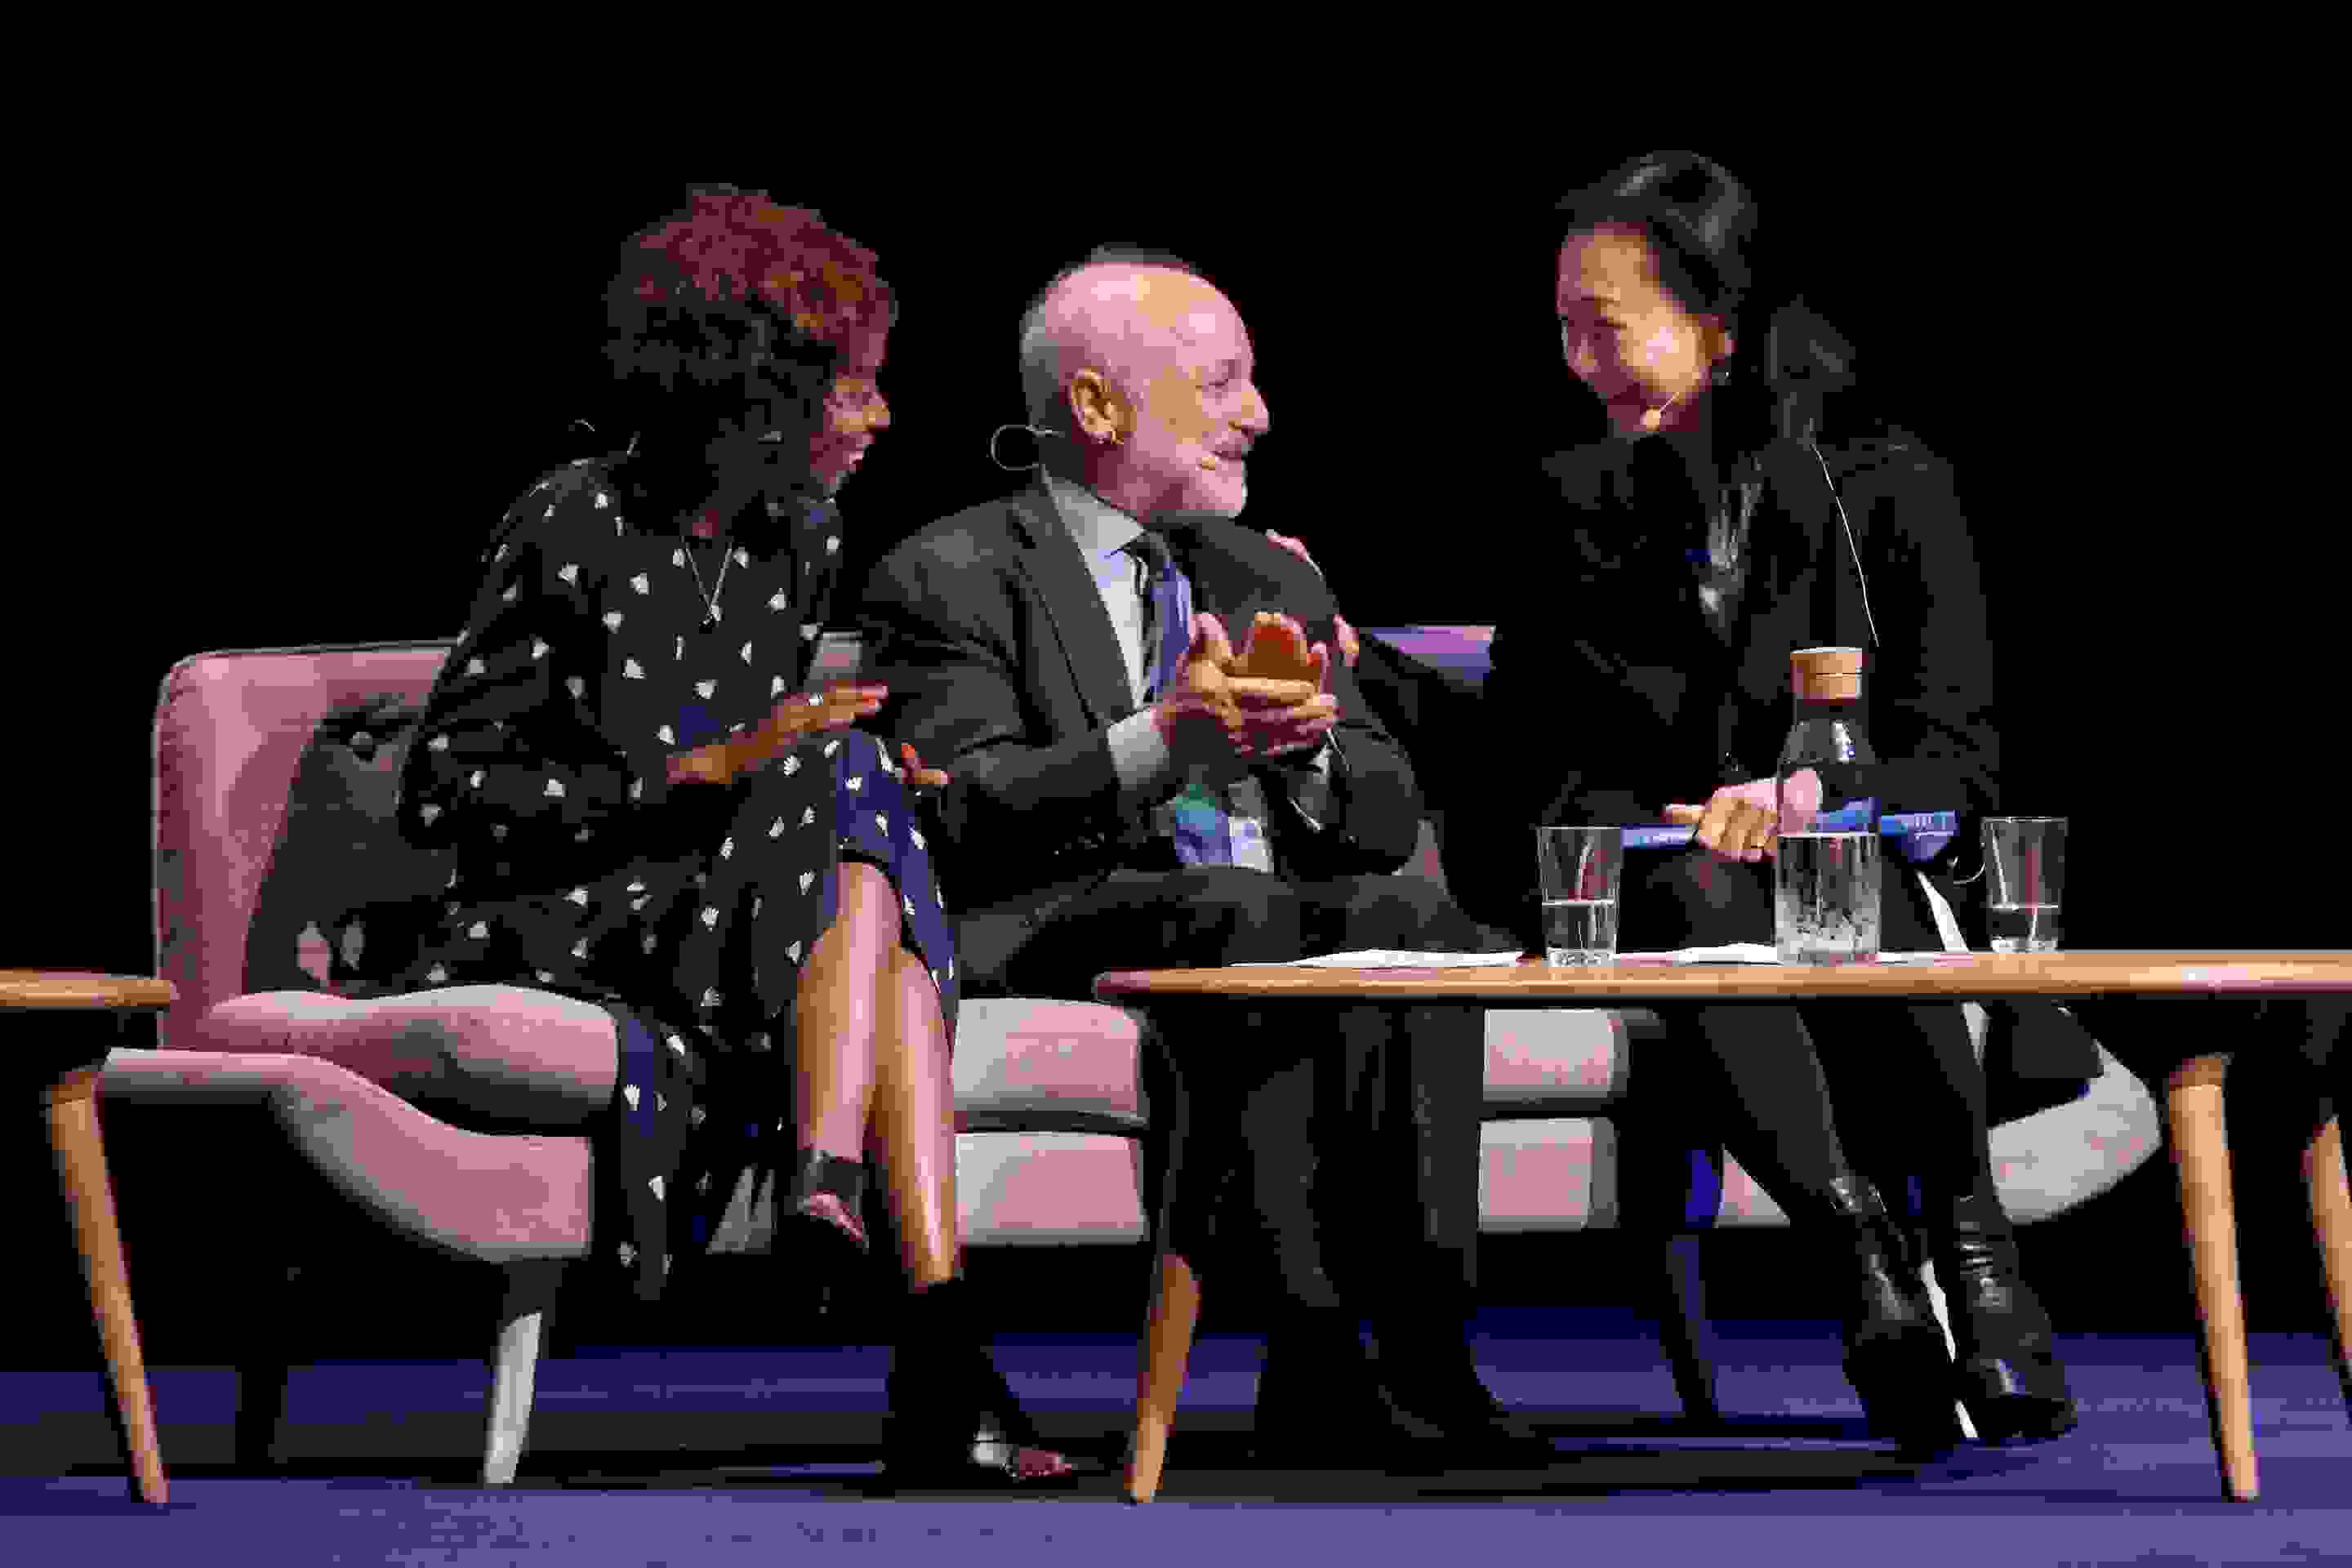 Alexis Okeowo, Andre Aciman and Min Jin Lee